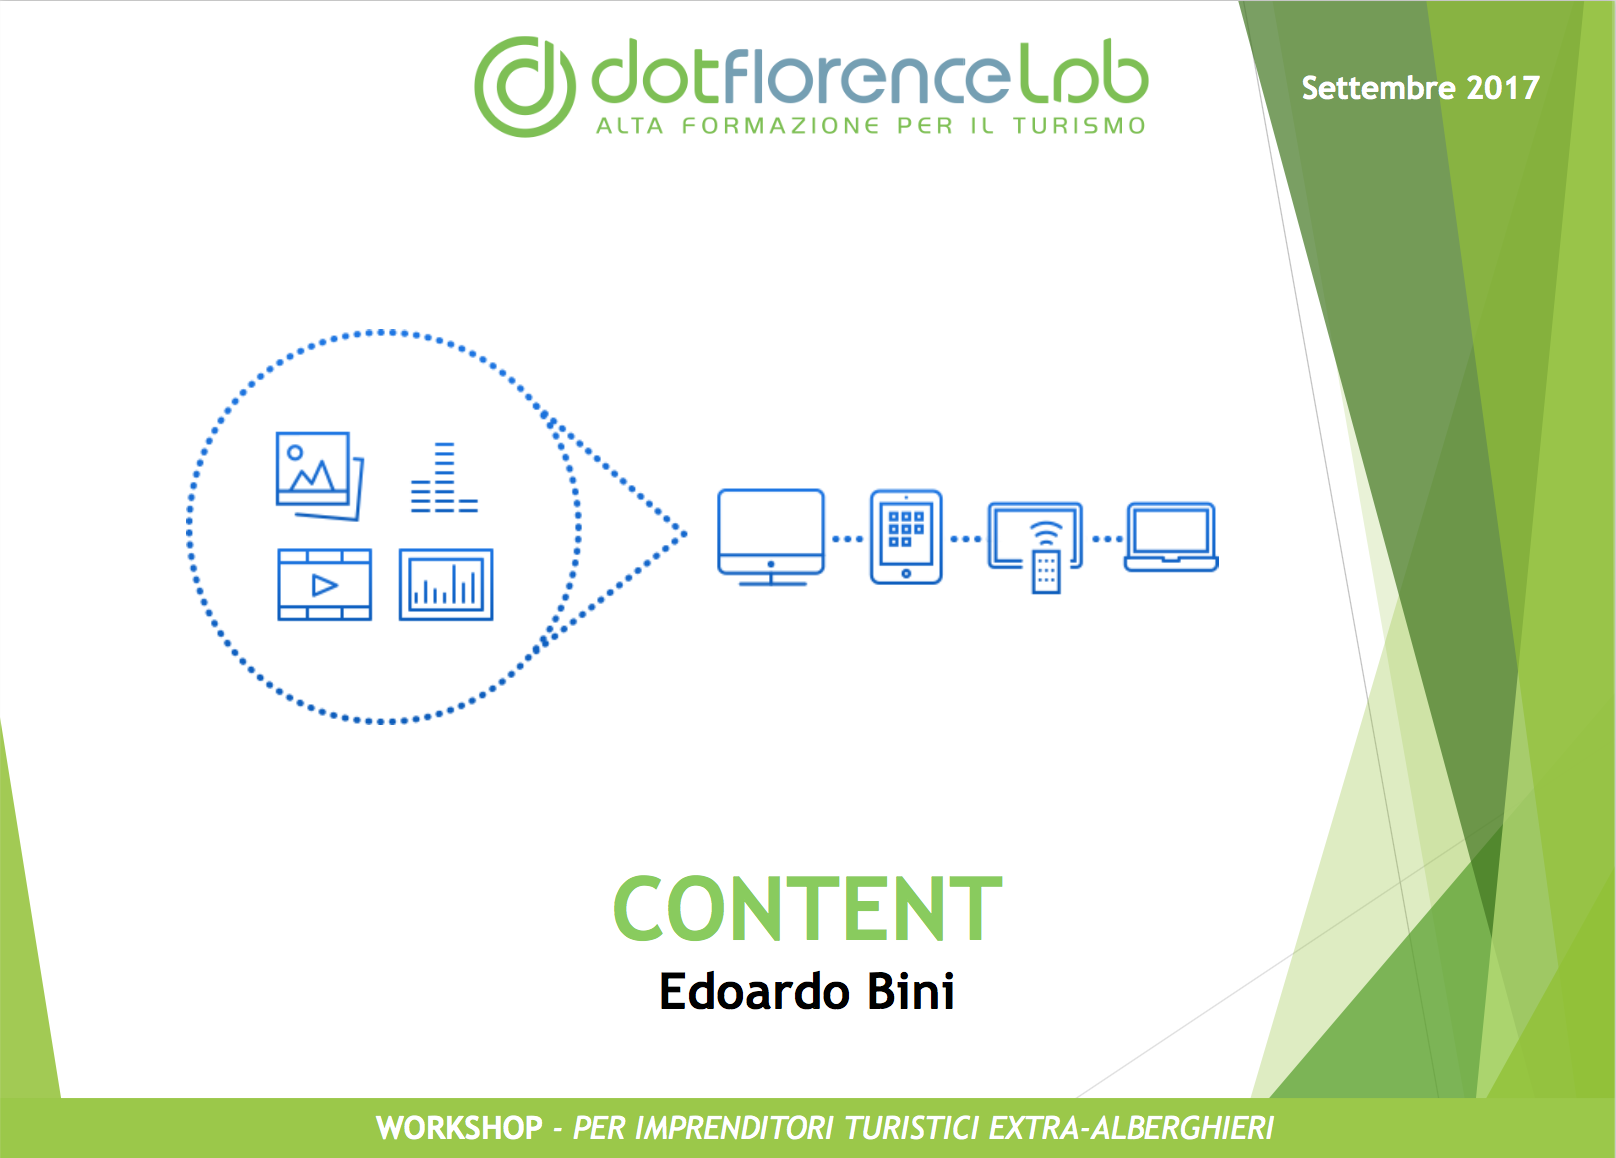 Dotflorence Lab 27 Settembre 2017 - Content Strategies